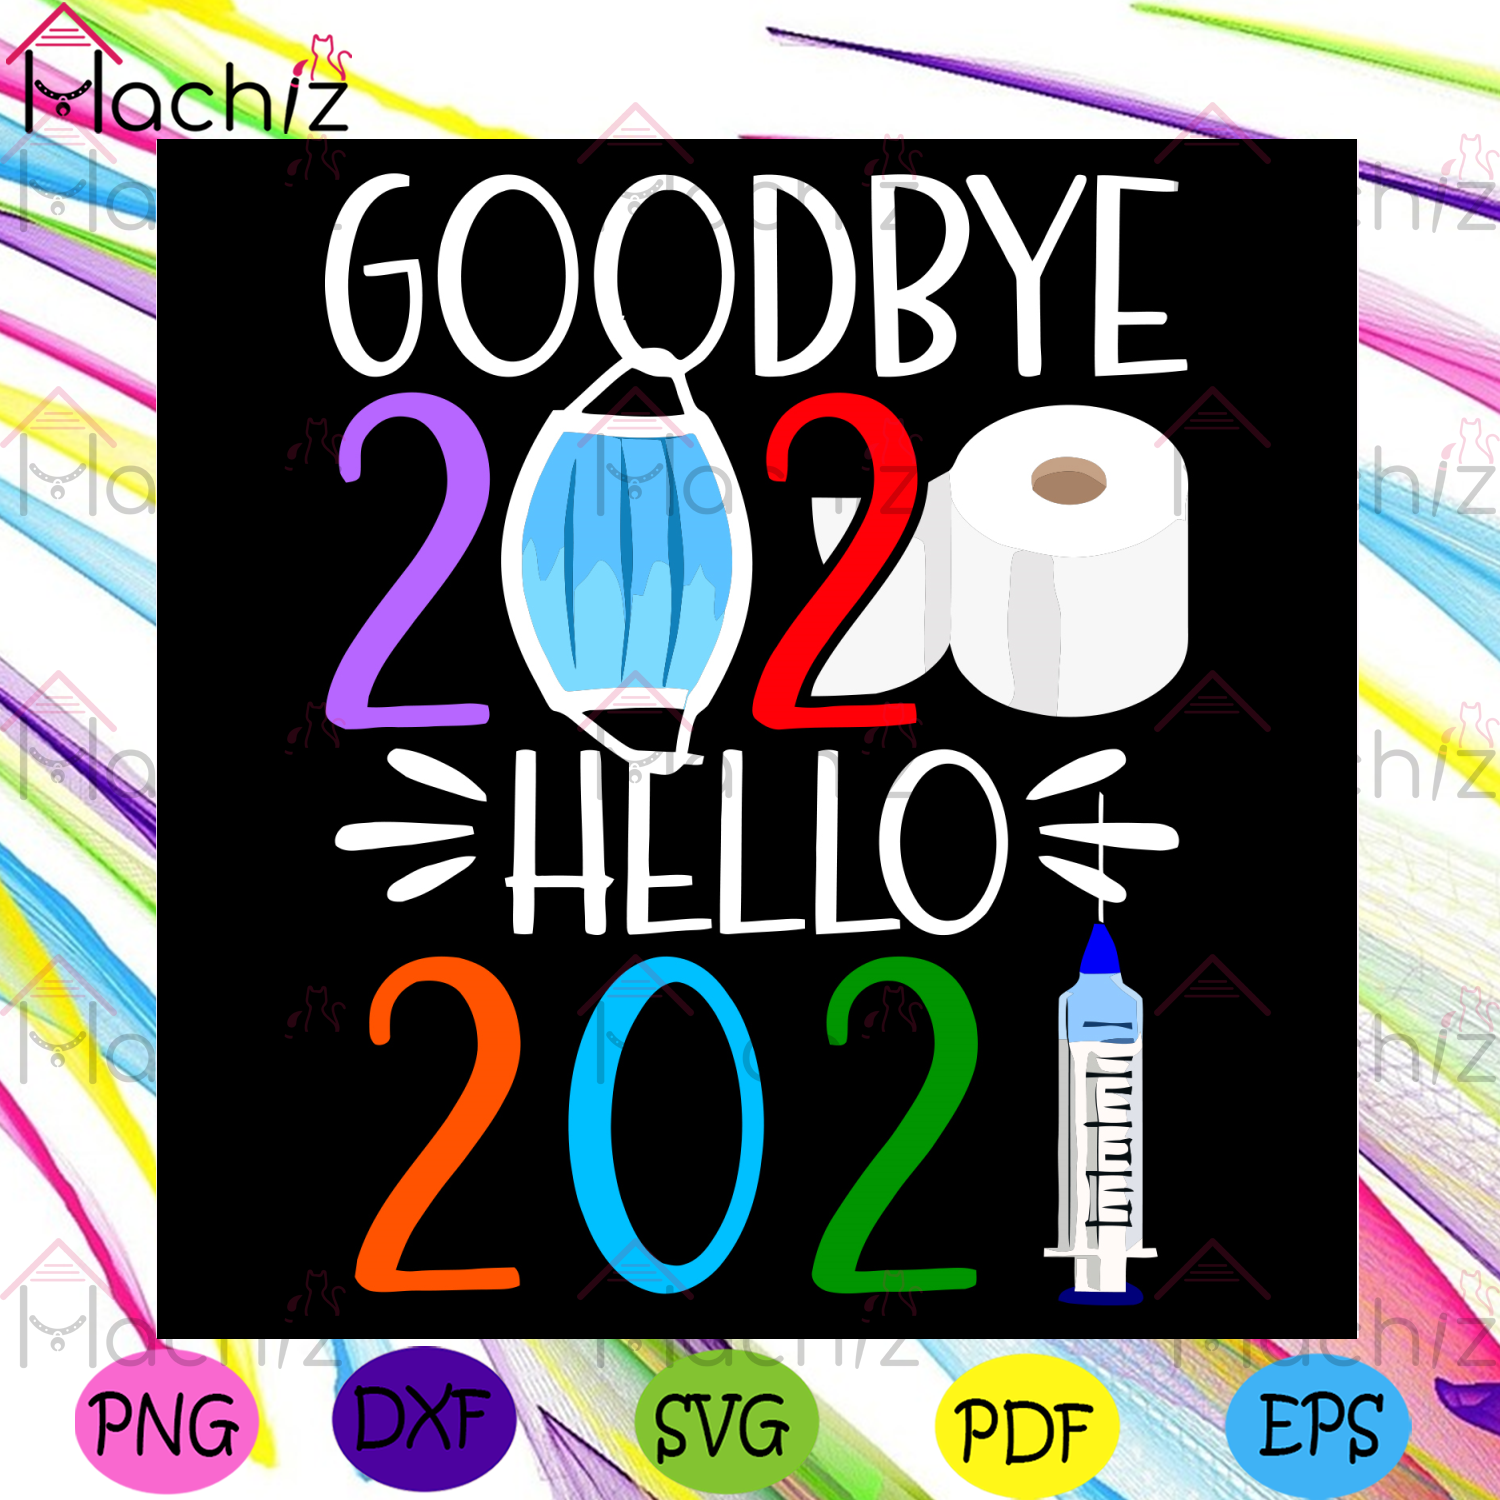 Goodbye 2020 Hello 2021 Svg, Trending Svg, Happy New Years Svg, Family Gift Svg, Goodbye 2020 Svg, Funny Toilet Paper Svg, Funny Face Mask Svg, Goodbye Covid Year Svg, Quarantine Svg, New Year Gifts Svg, Welcome 2021 Svg